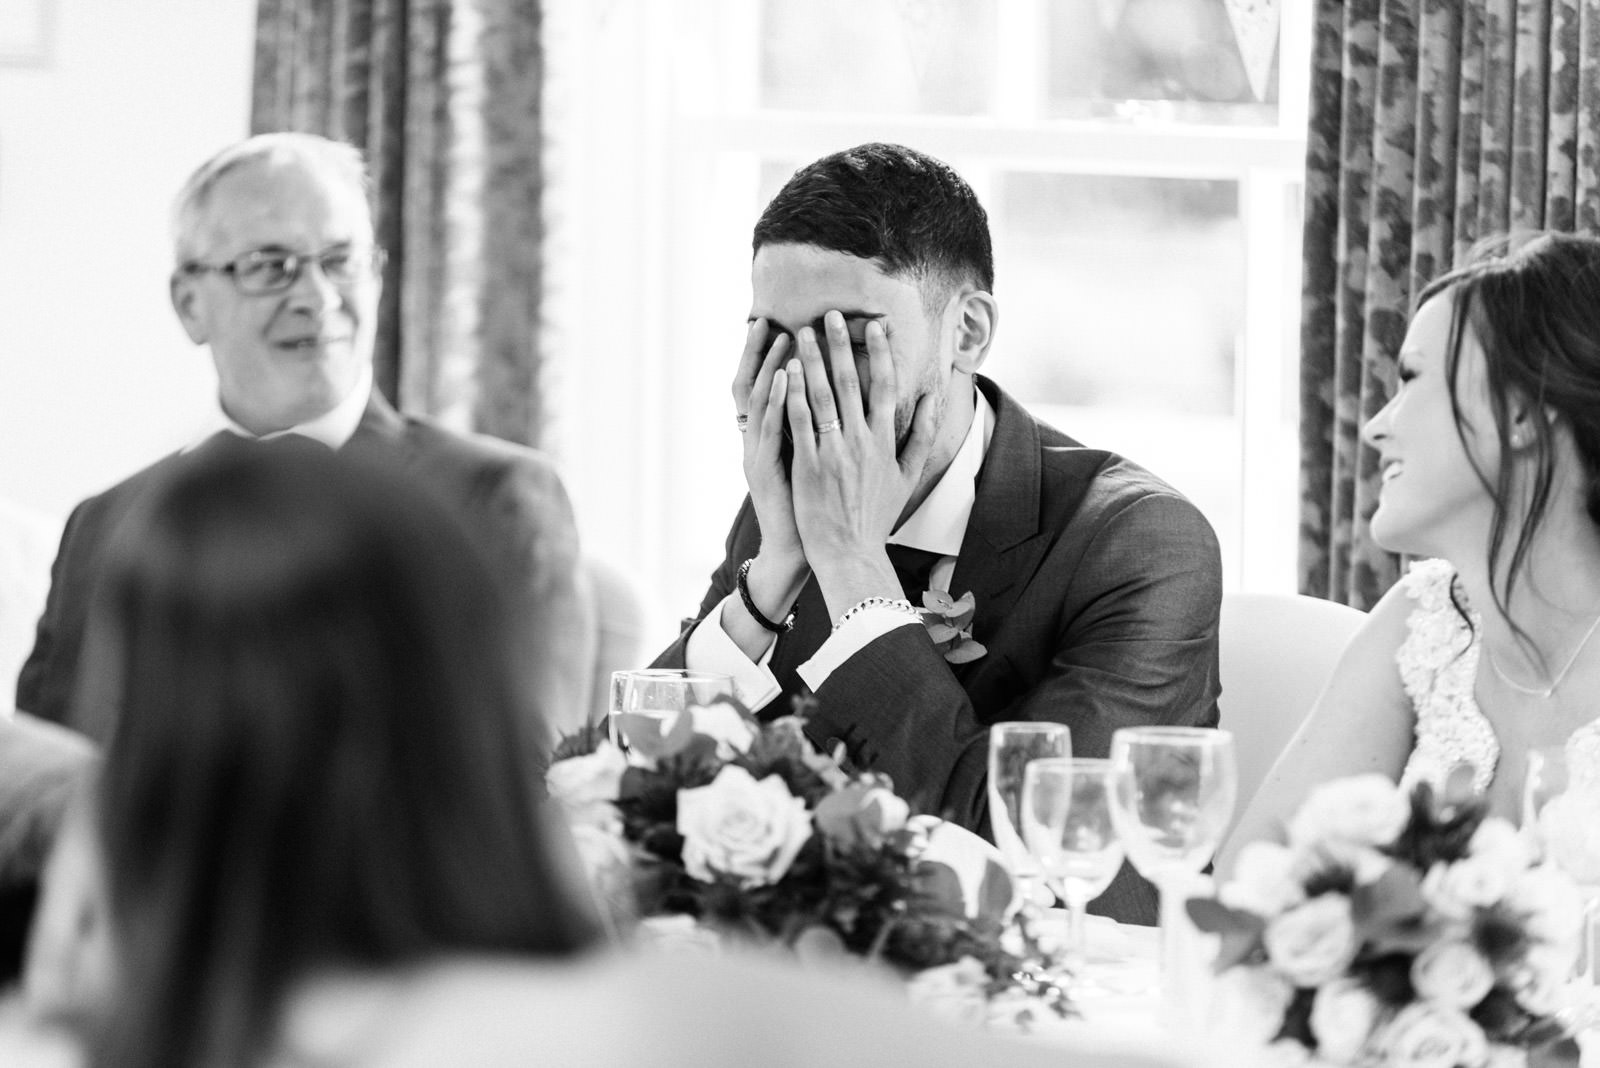 Groom embarrassed